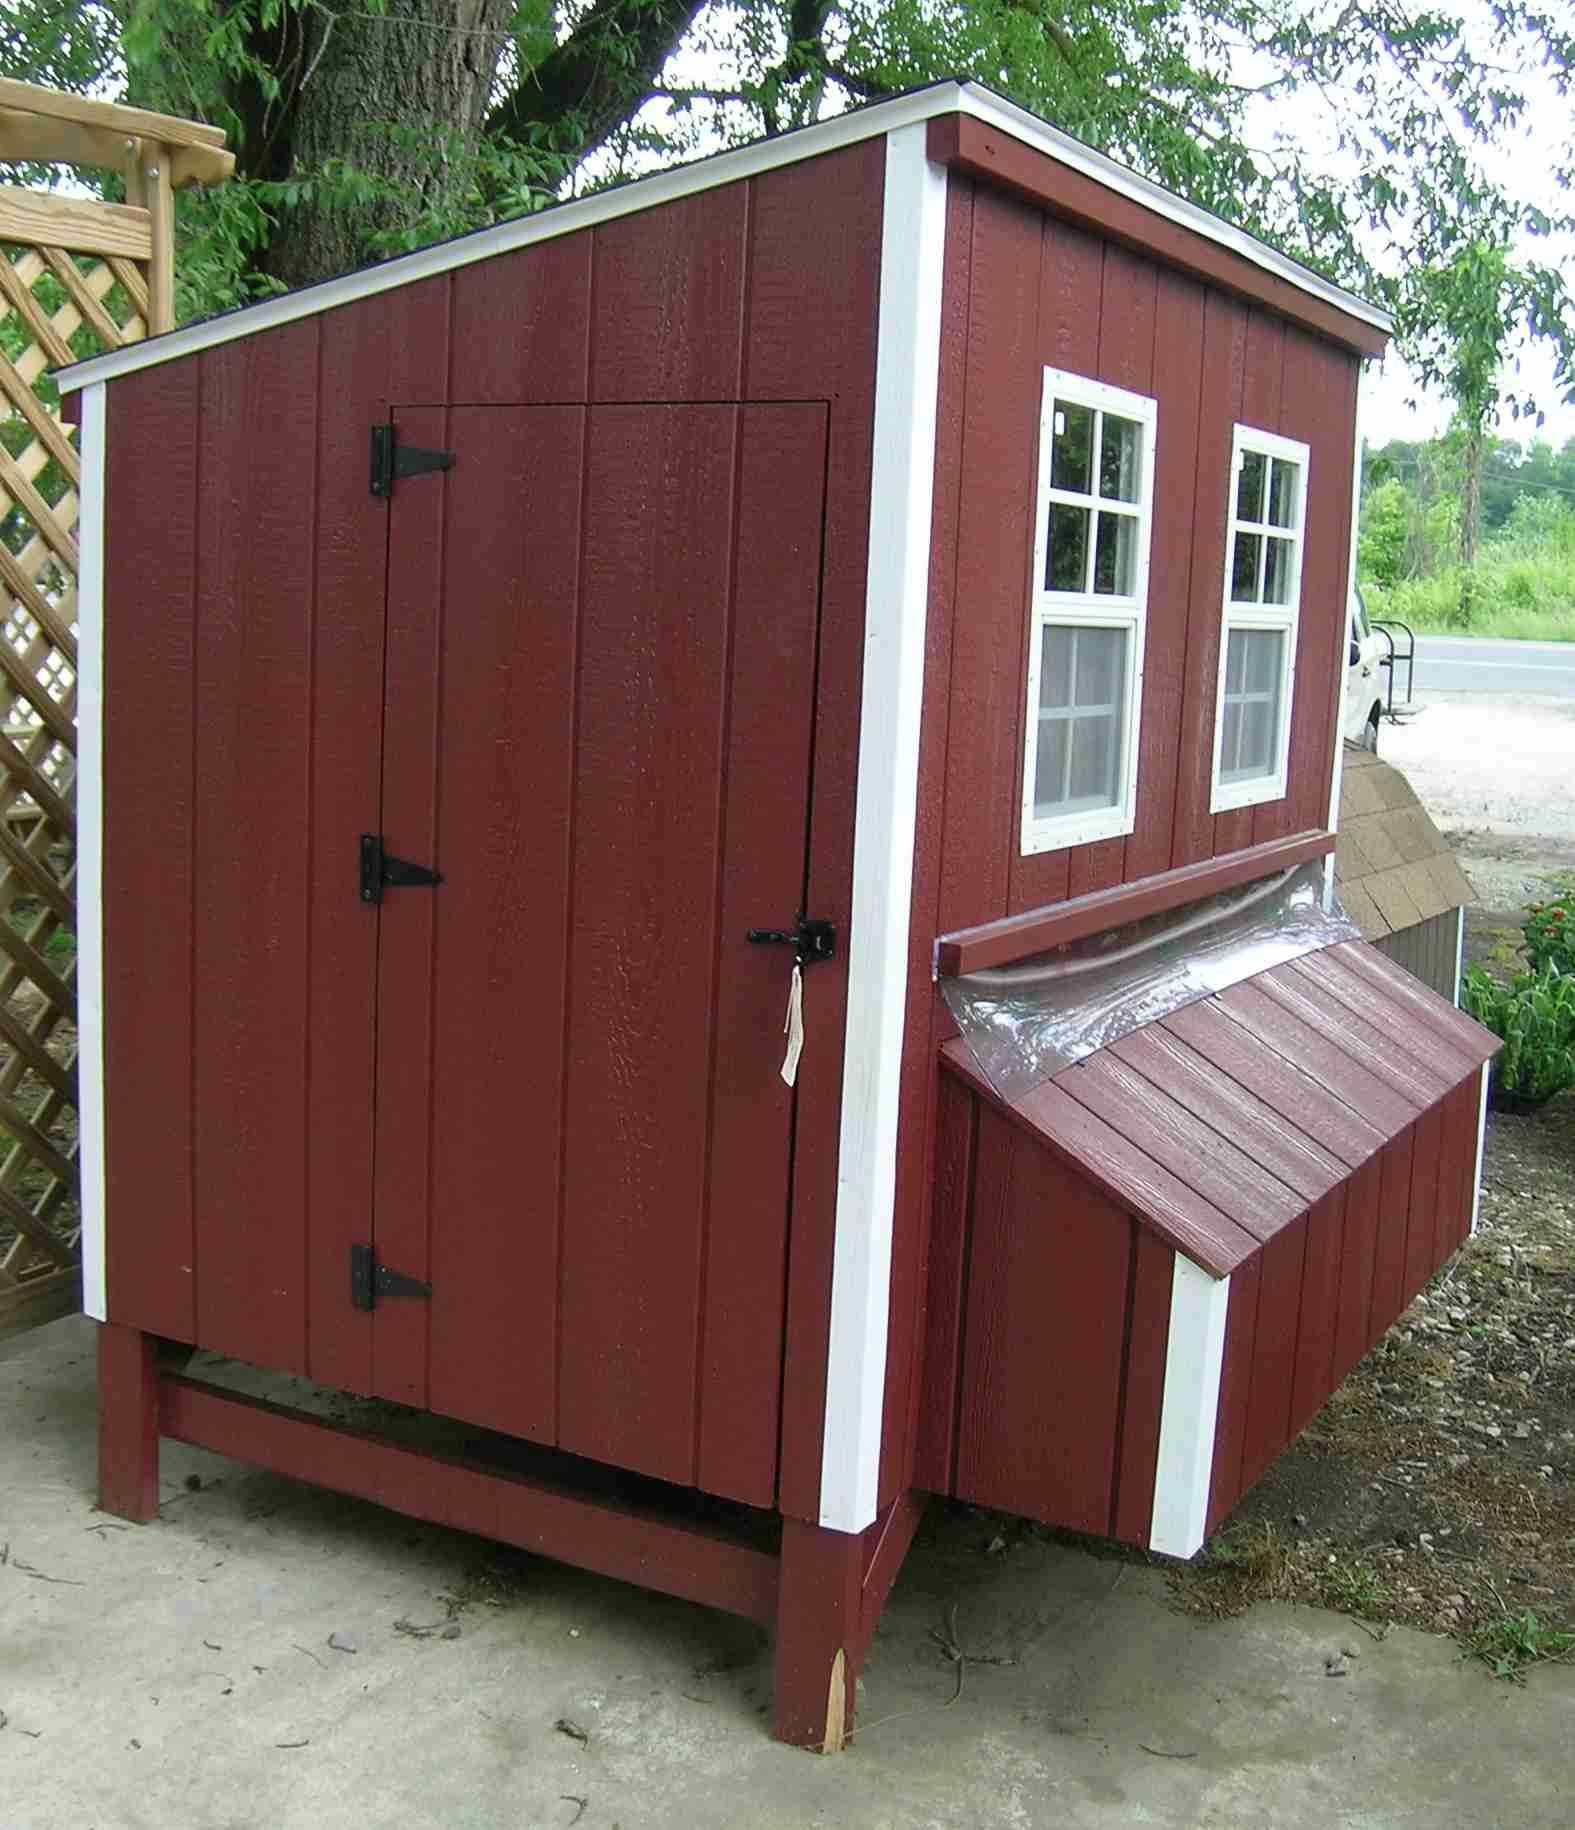 Easy Diy 4 X6 Chicken Coop Hen House Plans Pdf: 27 DIY Chicken Roosting Ideas For Chicken Comfortable